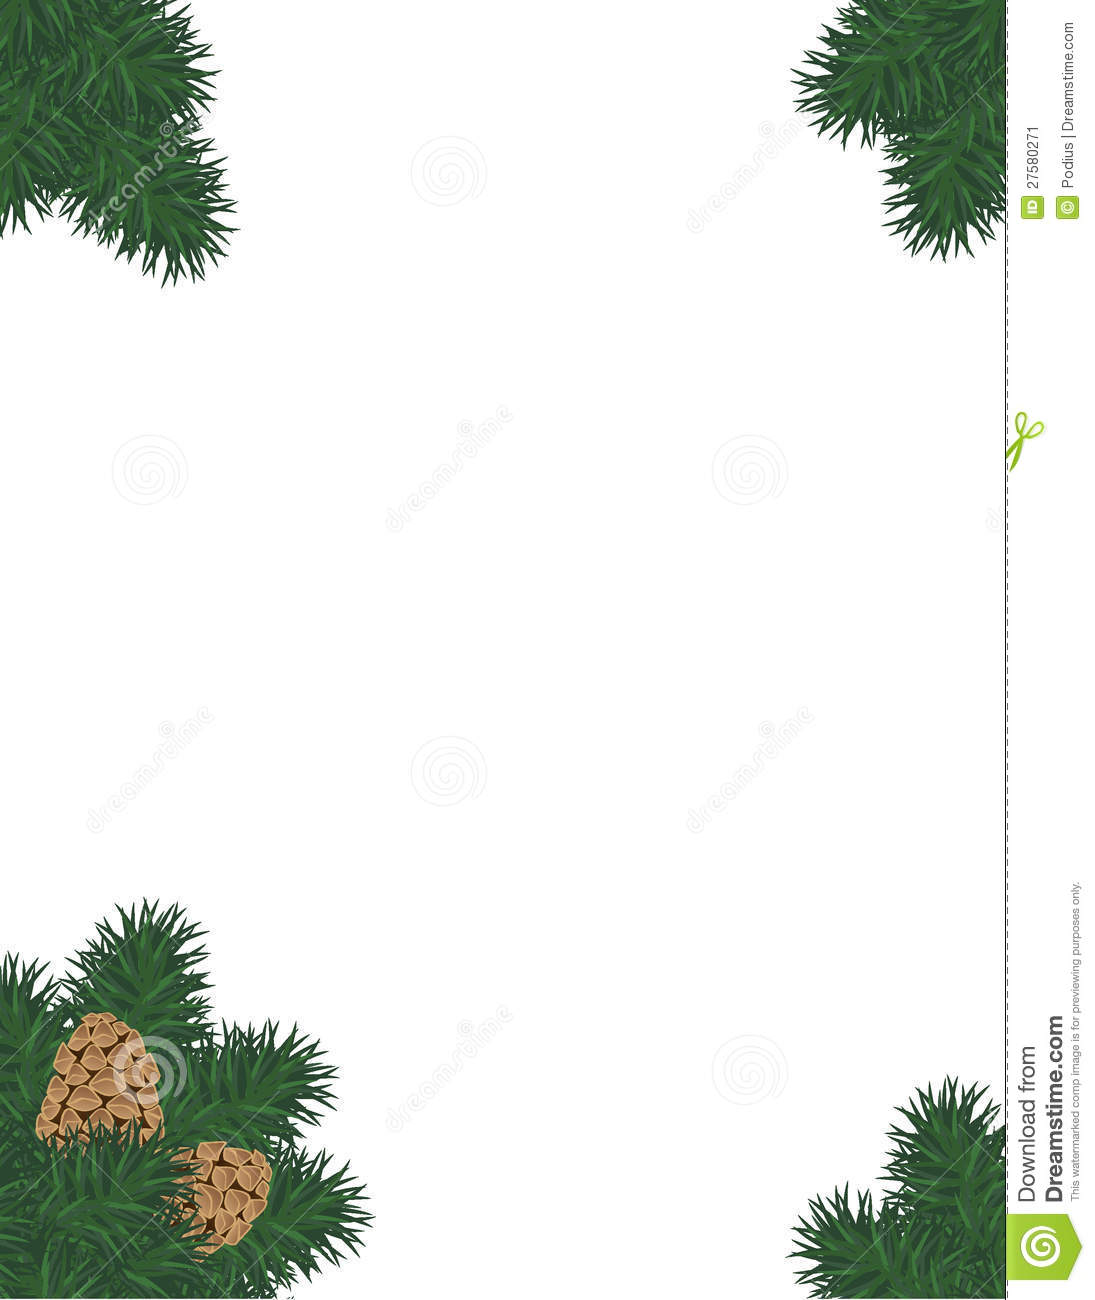 Free Christmas Bough Cliparts, Download Free Clip Art, Free Clip Art on  Clipart Library